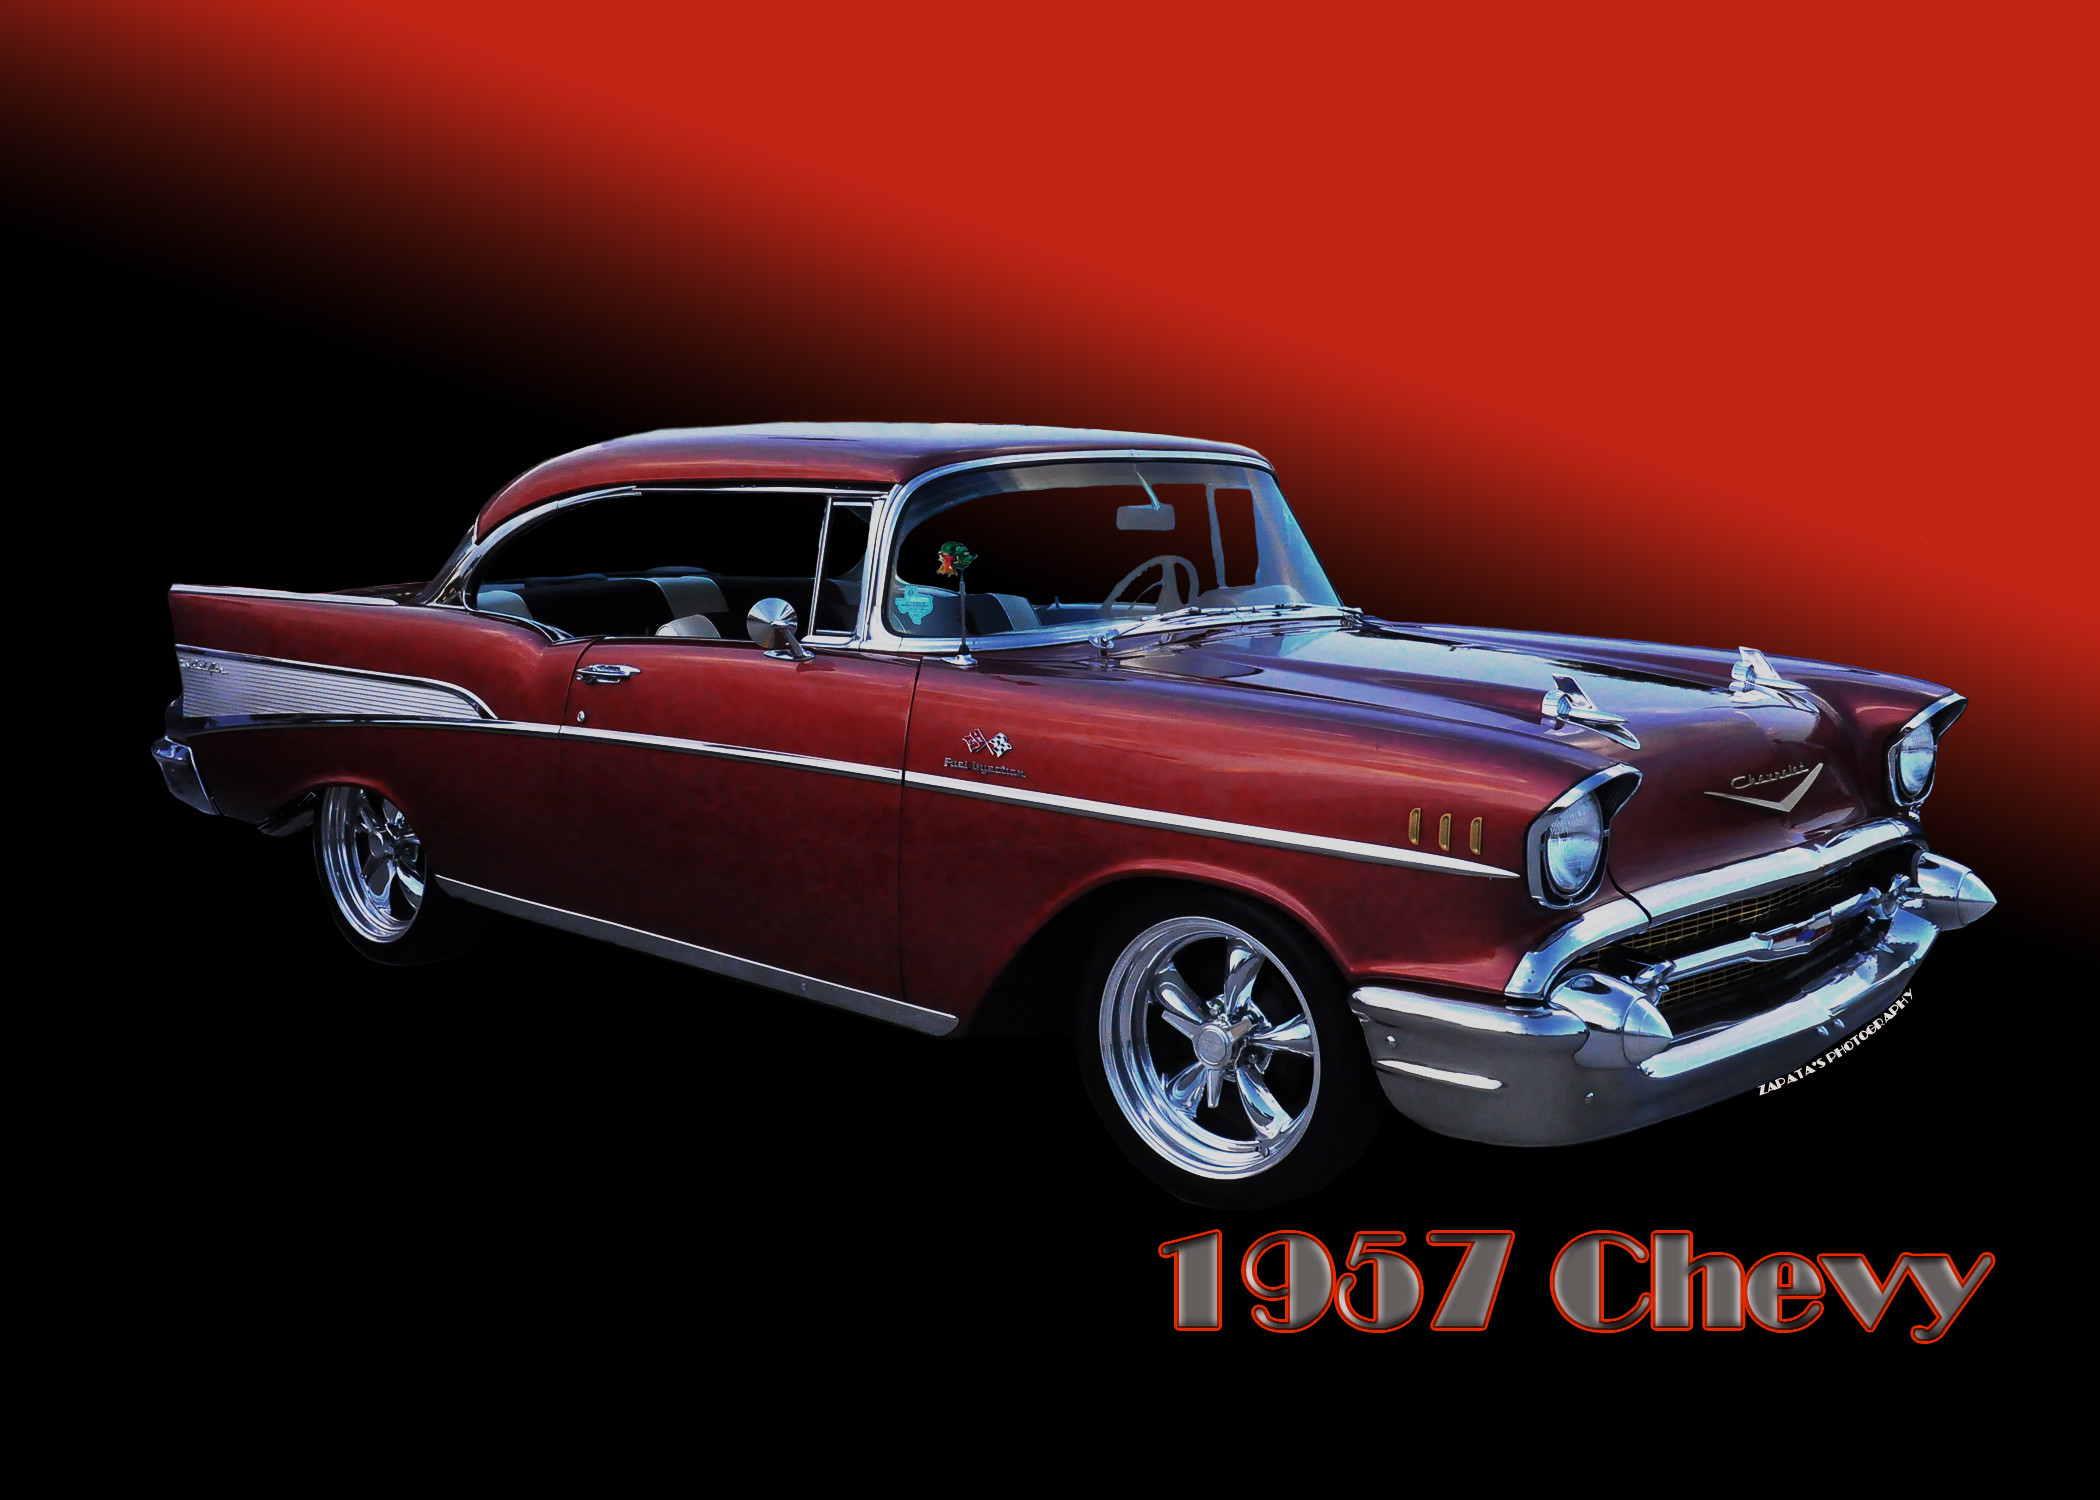 2100x1500 Full HD Pictures 57 Chevy 101149 KB